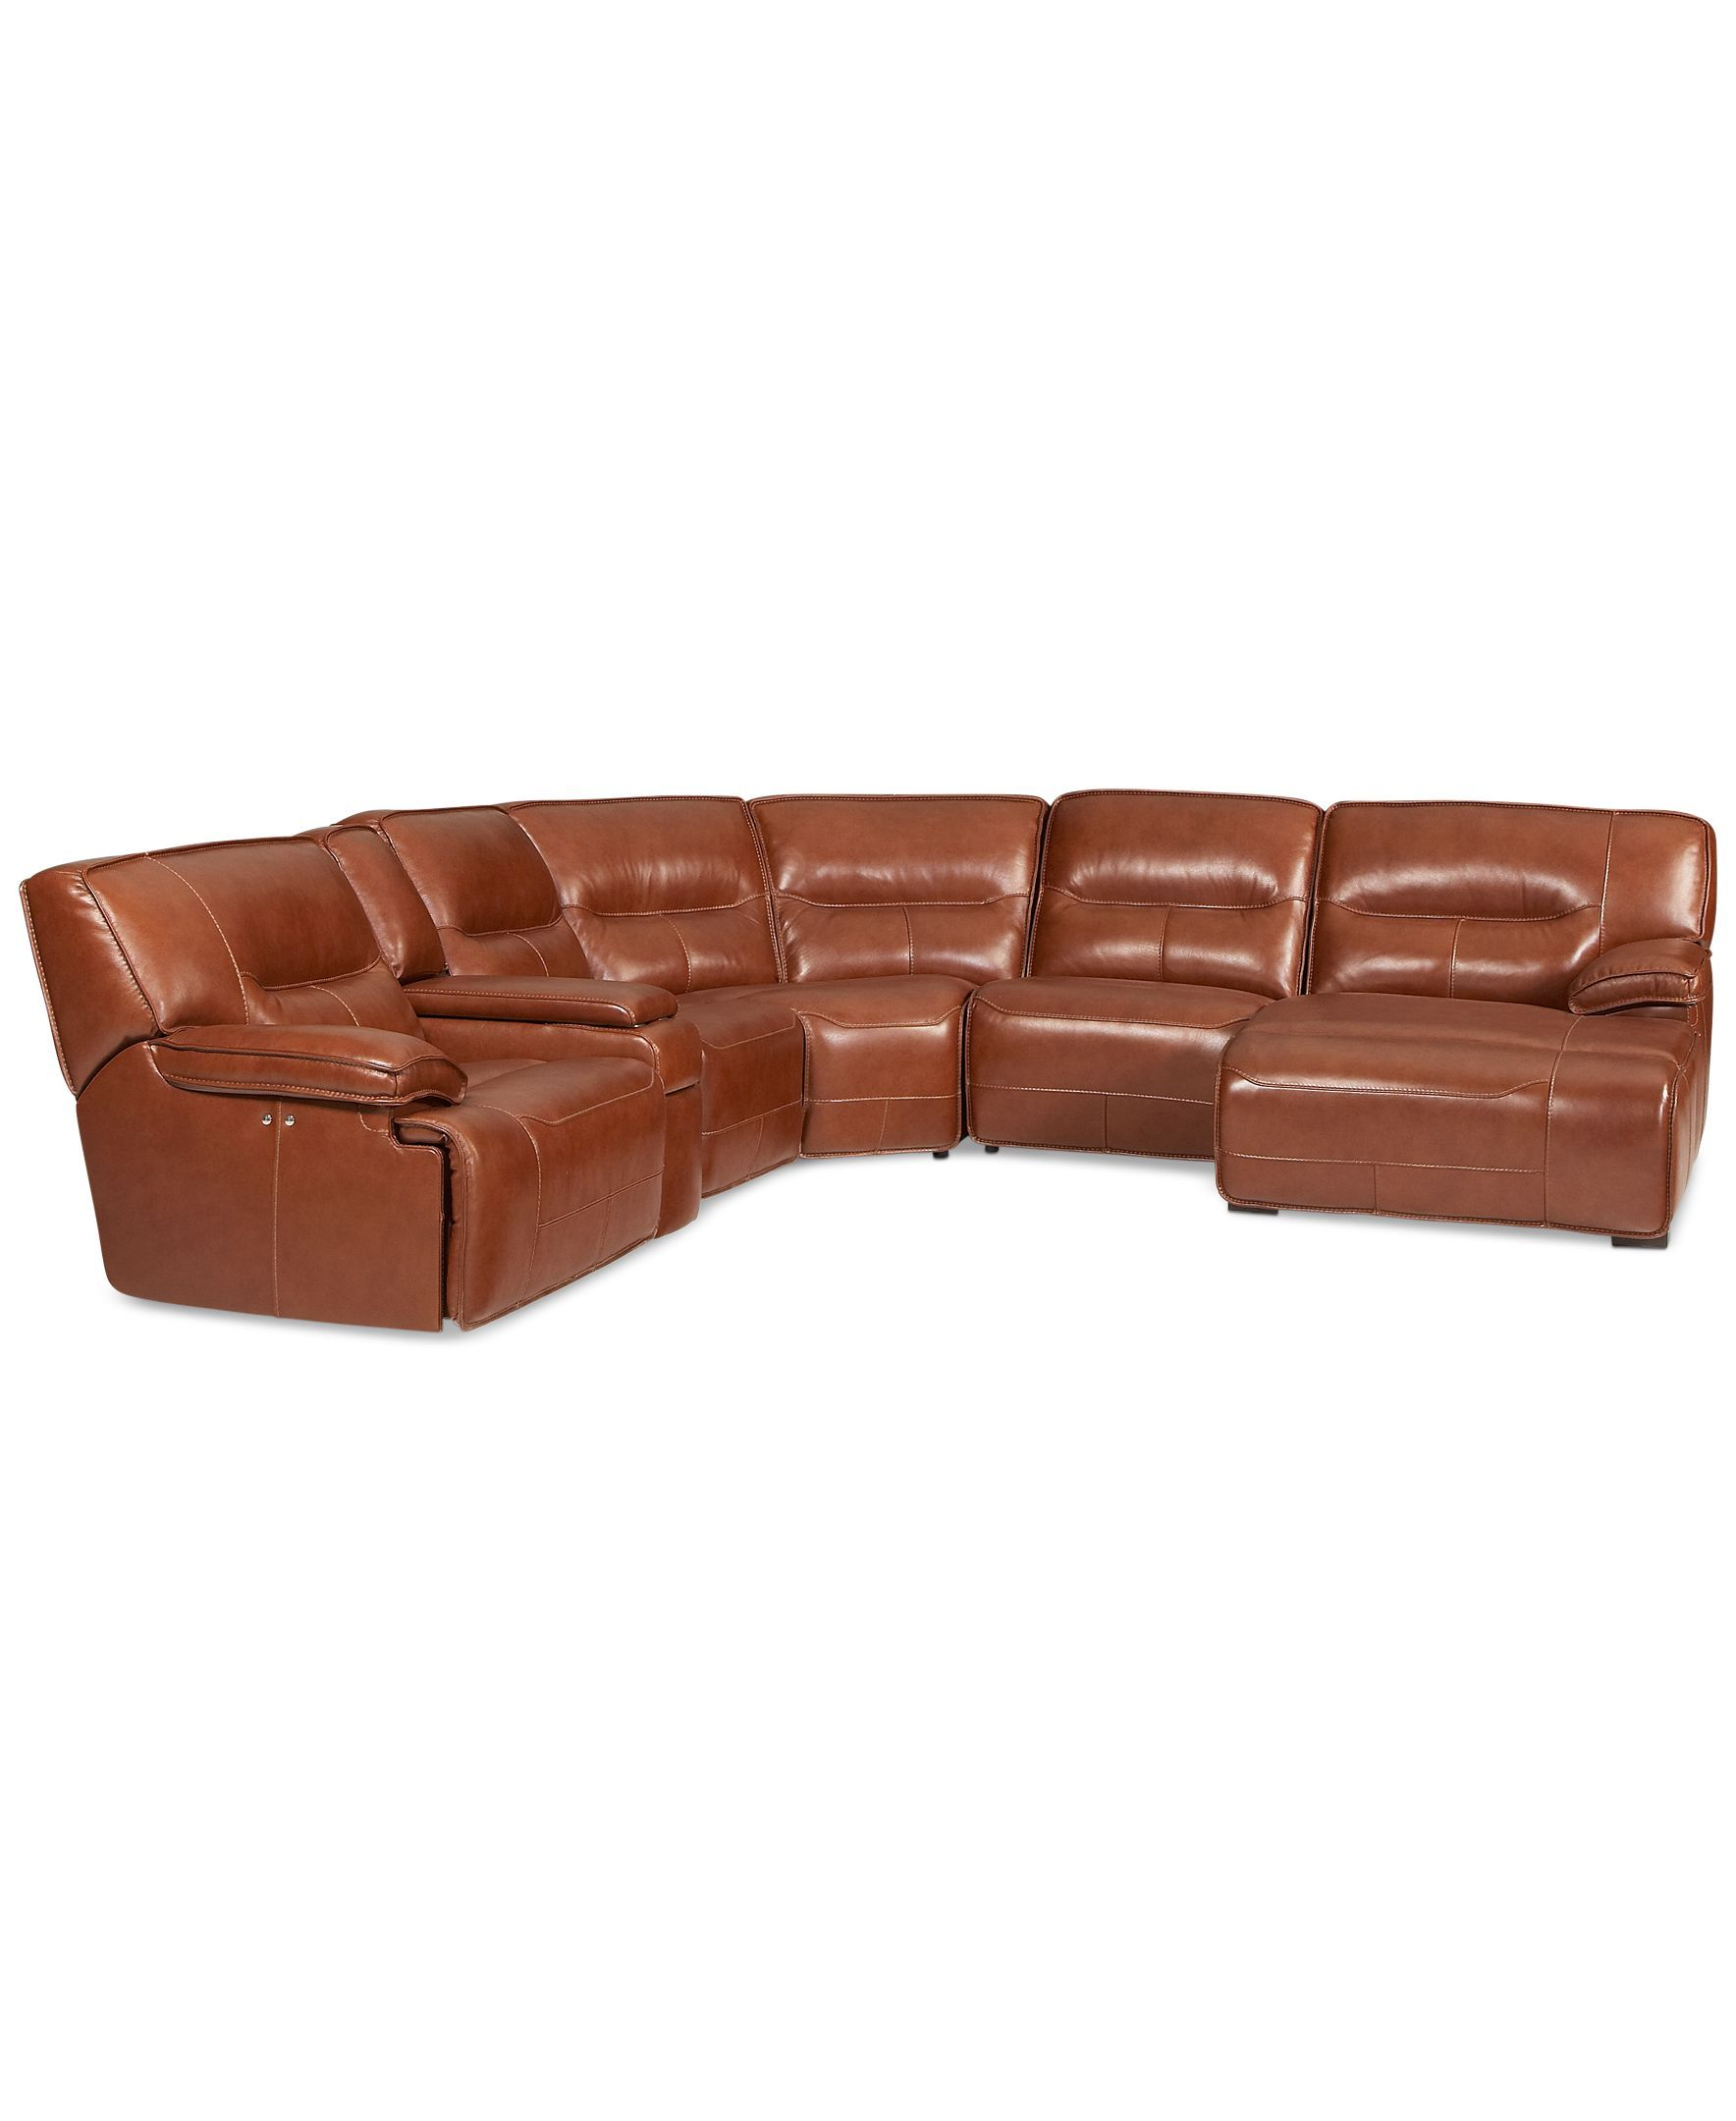 Beckett Leather 6-Piece Chaise Sectional Sofa with 2 Power Recliners